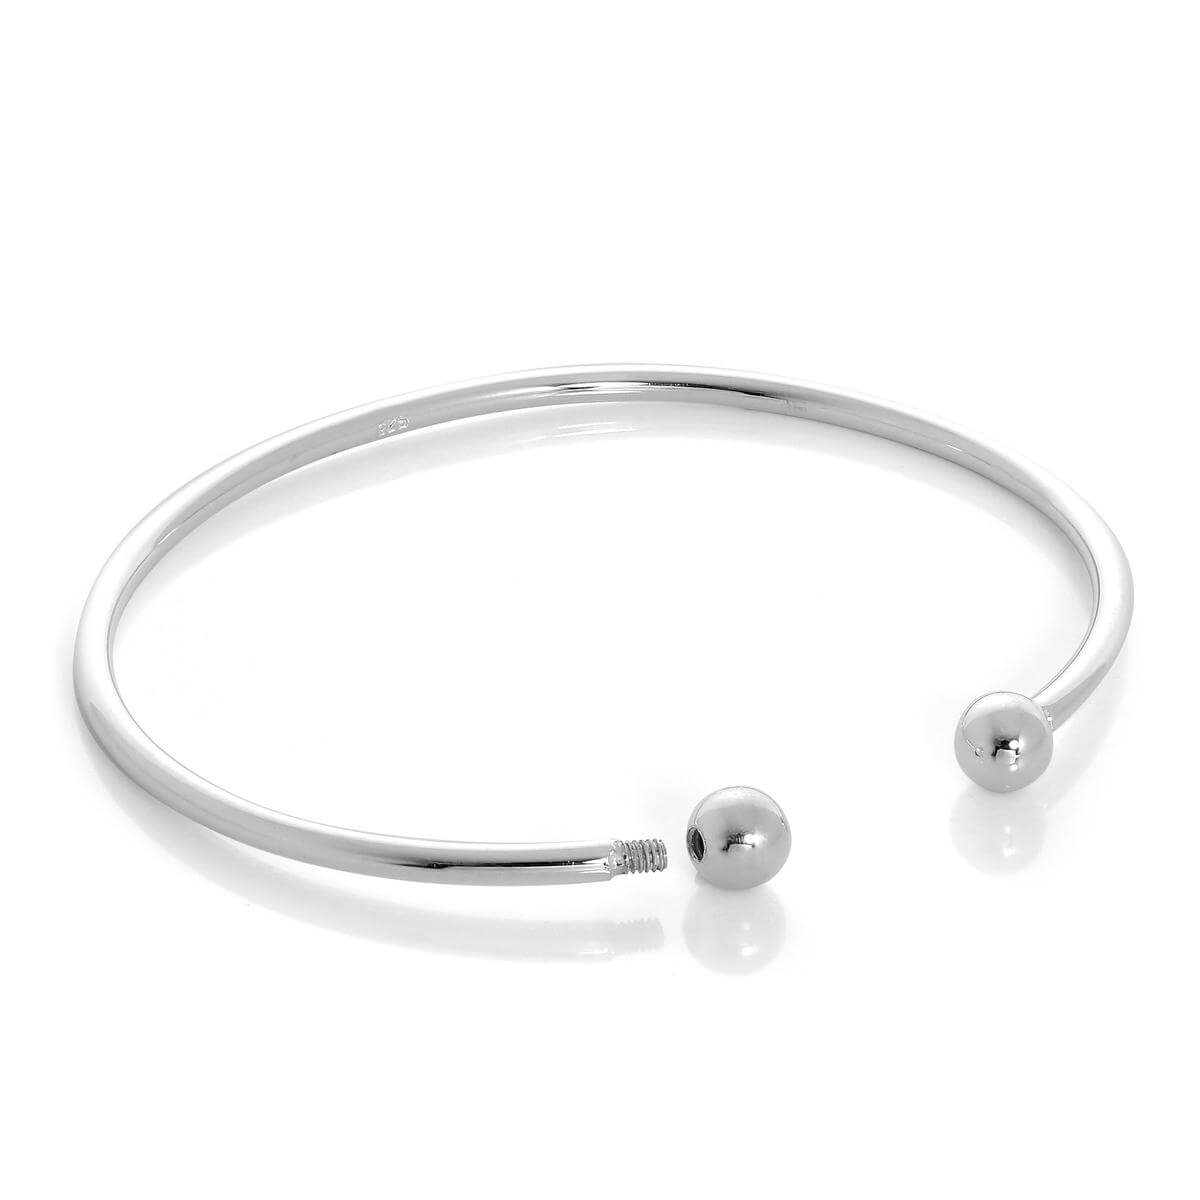 Alterative image for Solid Sterling Silver Opening Torque Mens Bangle